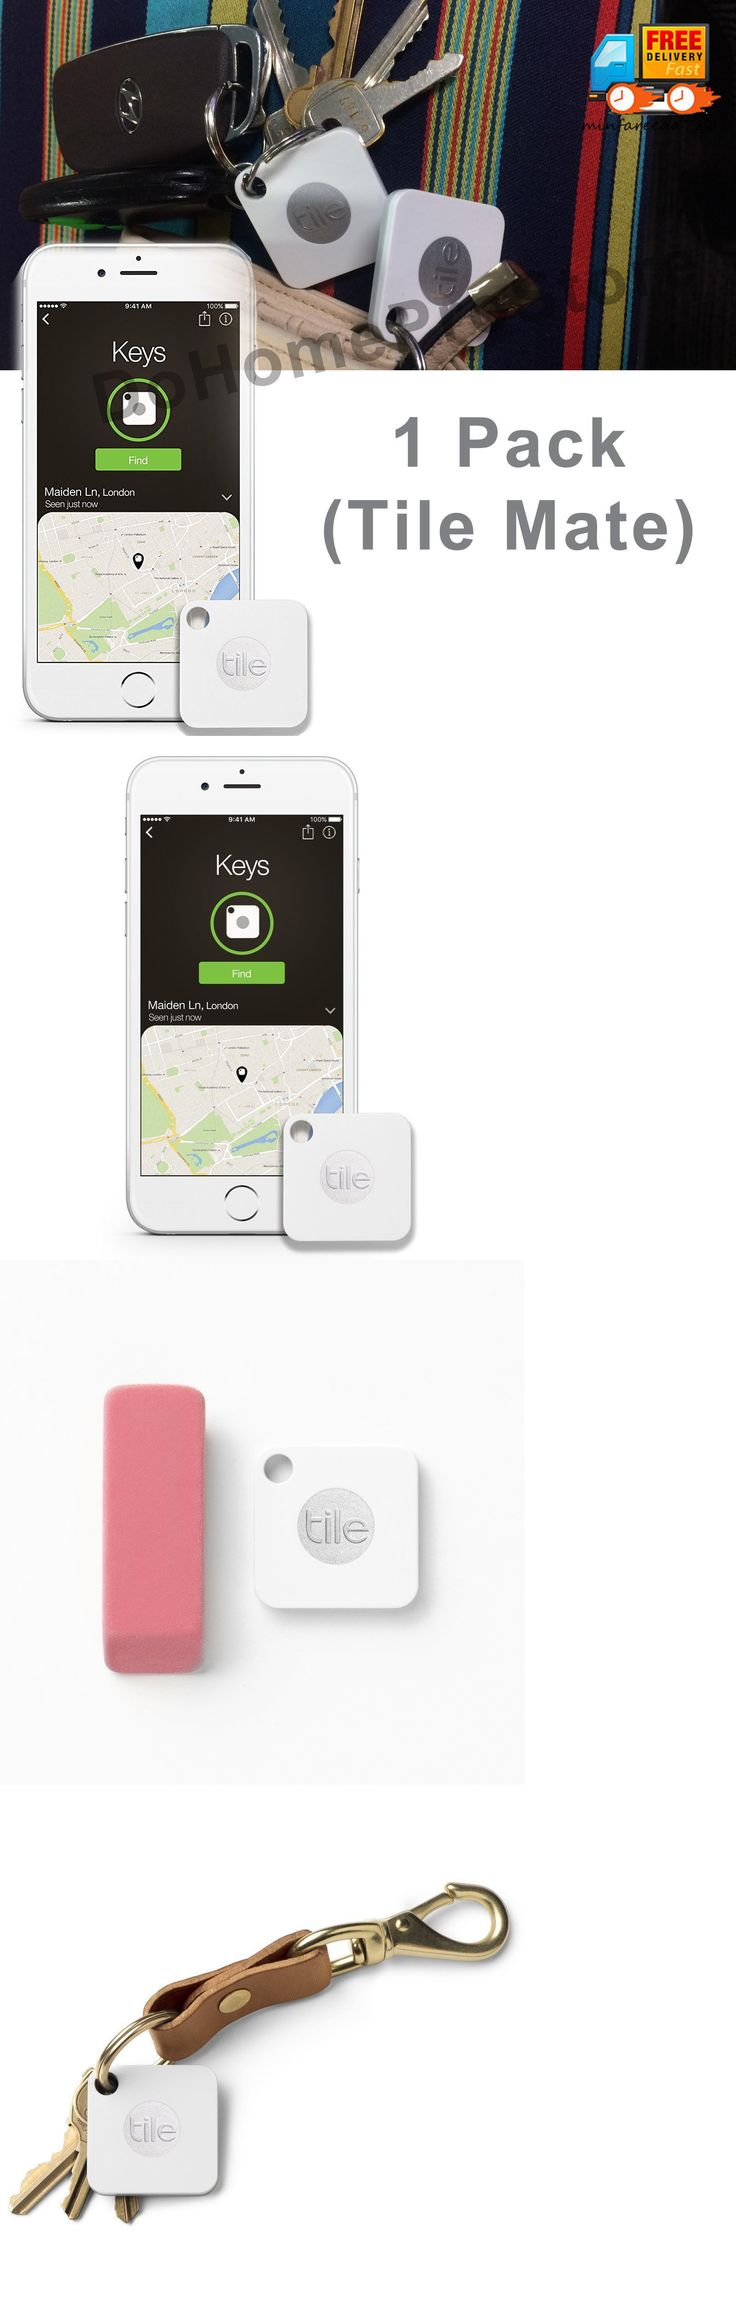 Tracking Devices: Tile Mate Key Finder Bluetooth Phone Tracker Find Anything Ring Locator, 1 Pack -> BUY IT NOW ONLY: $35.95 on eBay!